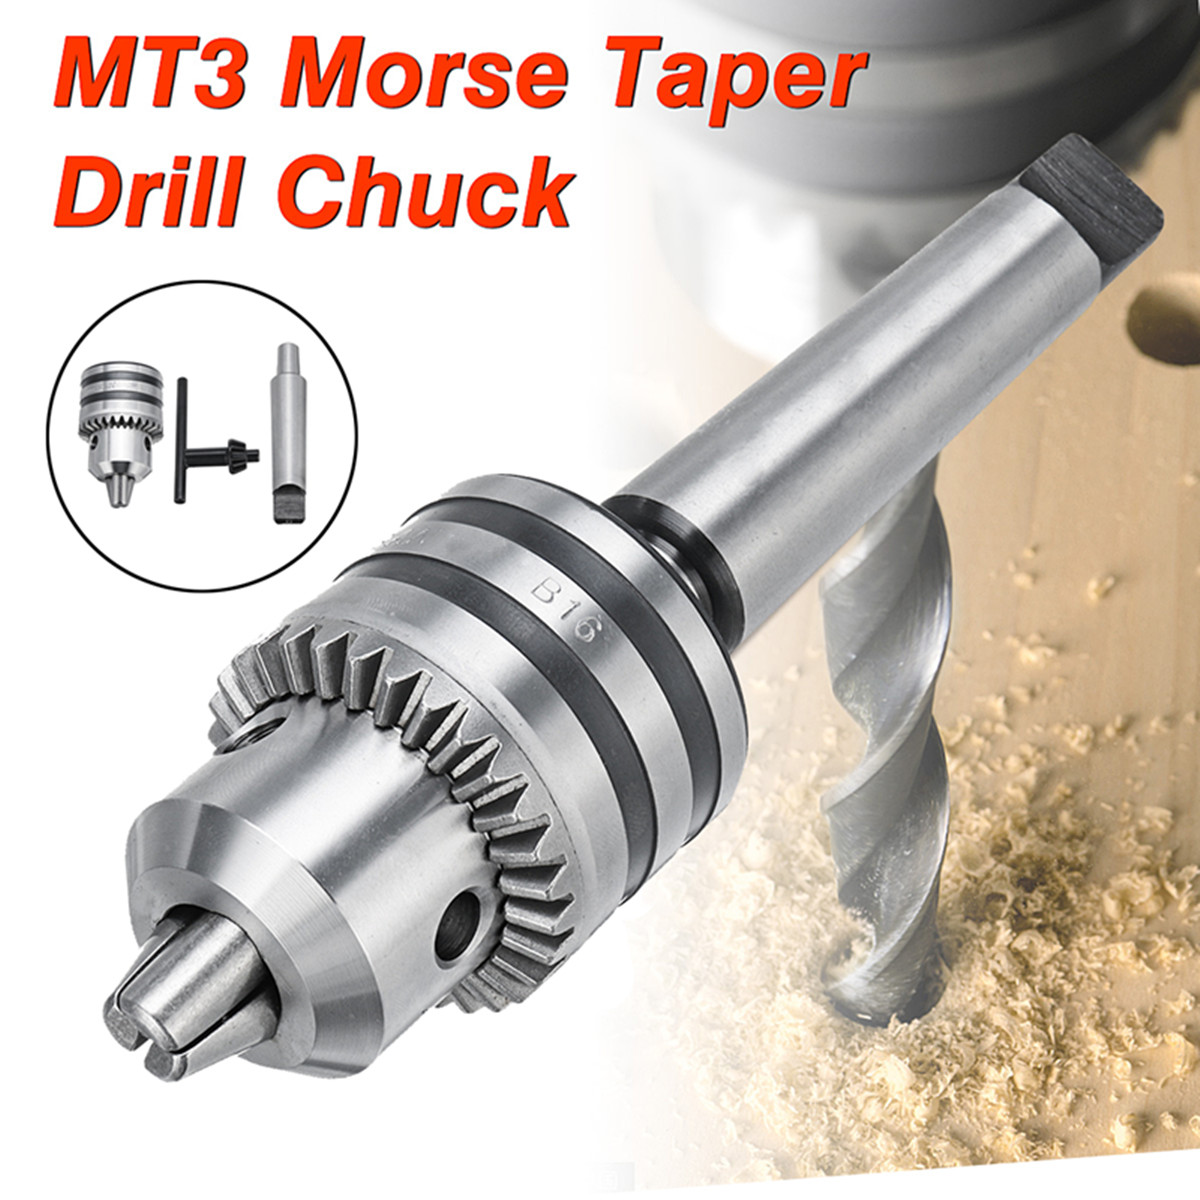 1-13mm Heavy Duty Drill Chuck with MT3 Morse Taper Arbor MT3 For Mini Lathe Rotary Hammer Hand Tool hight quality morse taper shank drill chucks set cnc lathe drill chuck 5 to 20mm b22 with no 3 morse taper mt3 with key